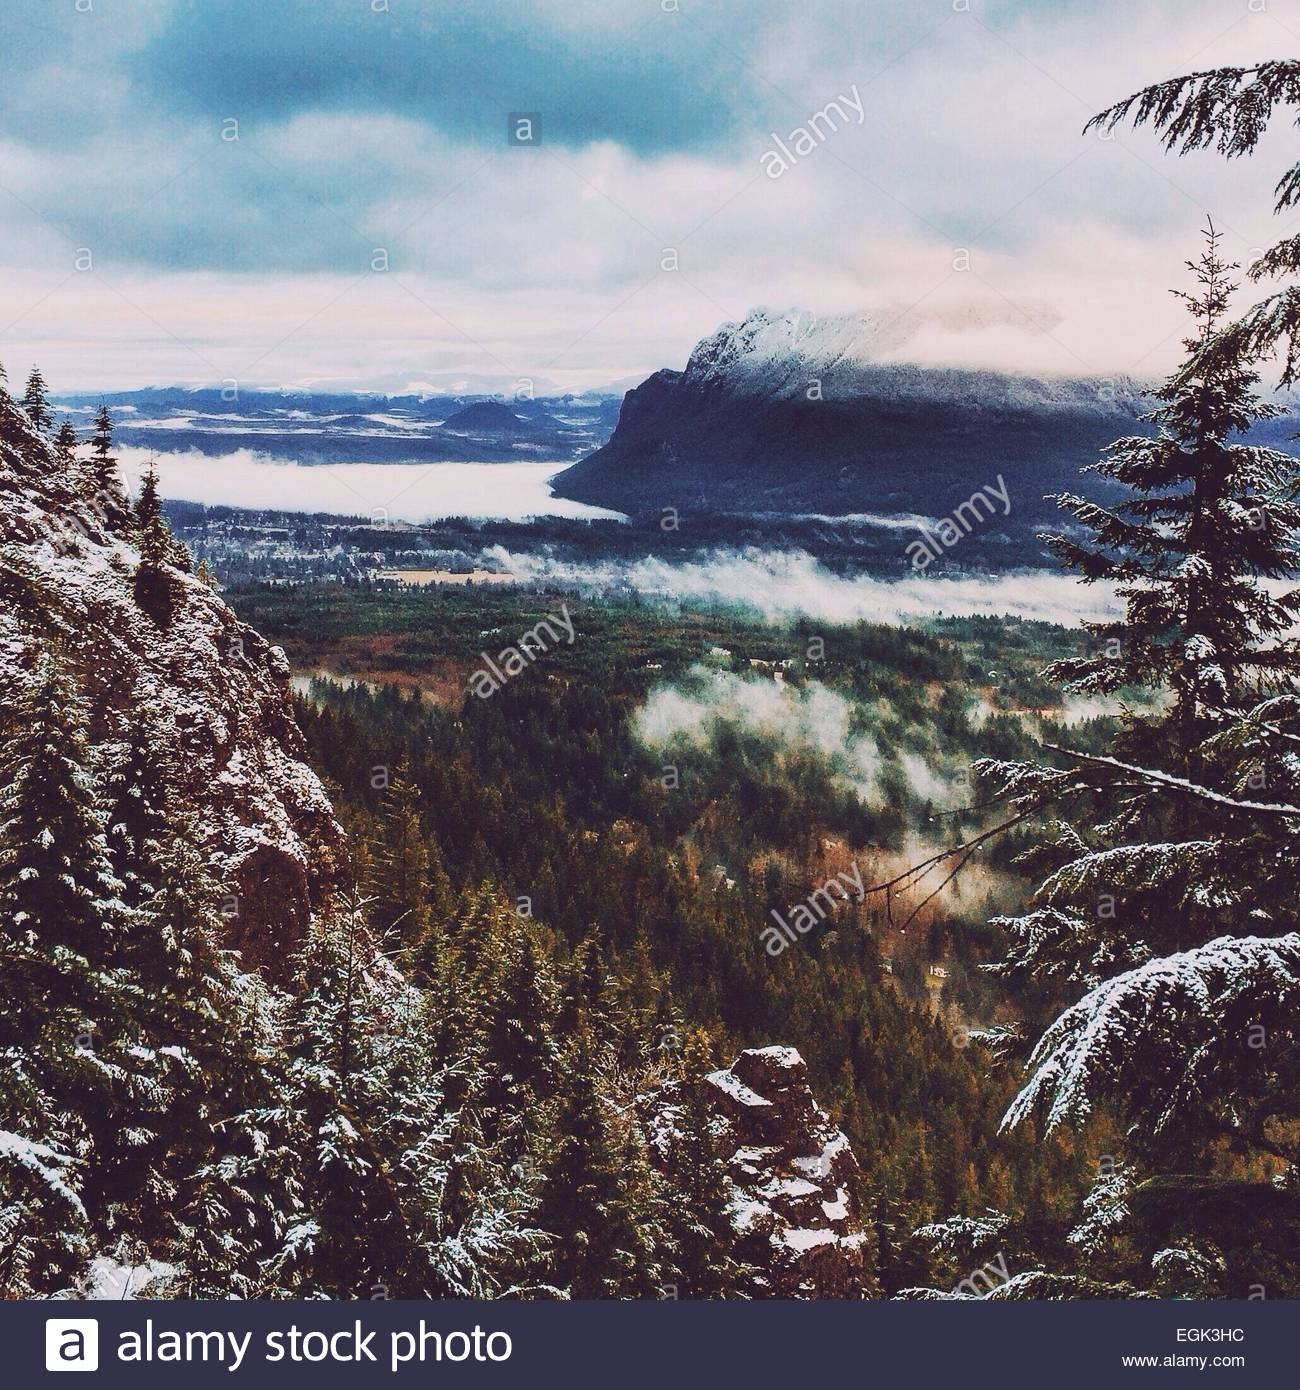 View of majestic mountain valley in winter - Stock Image